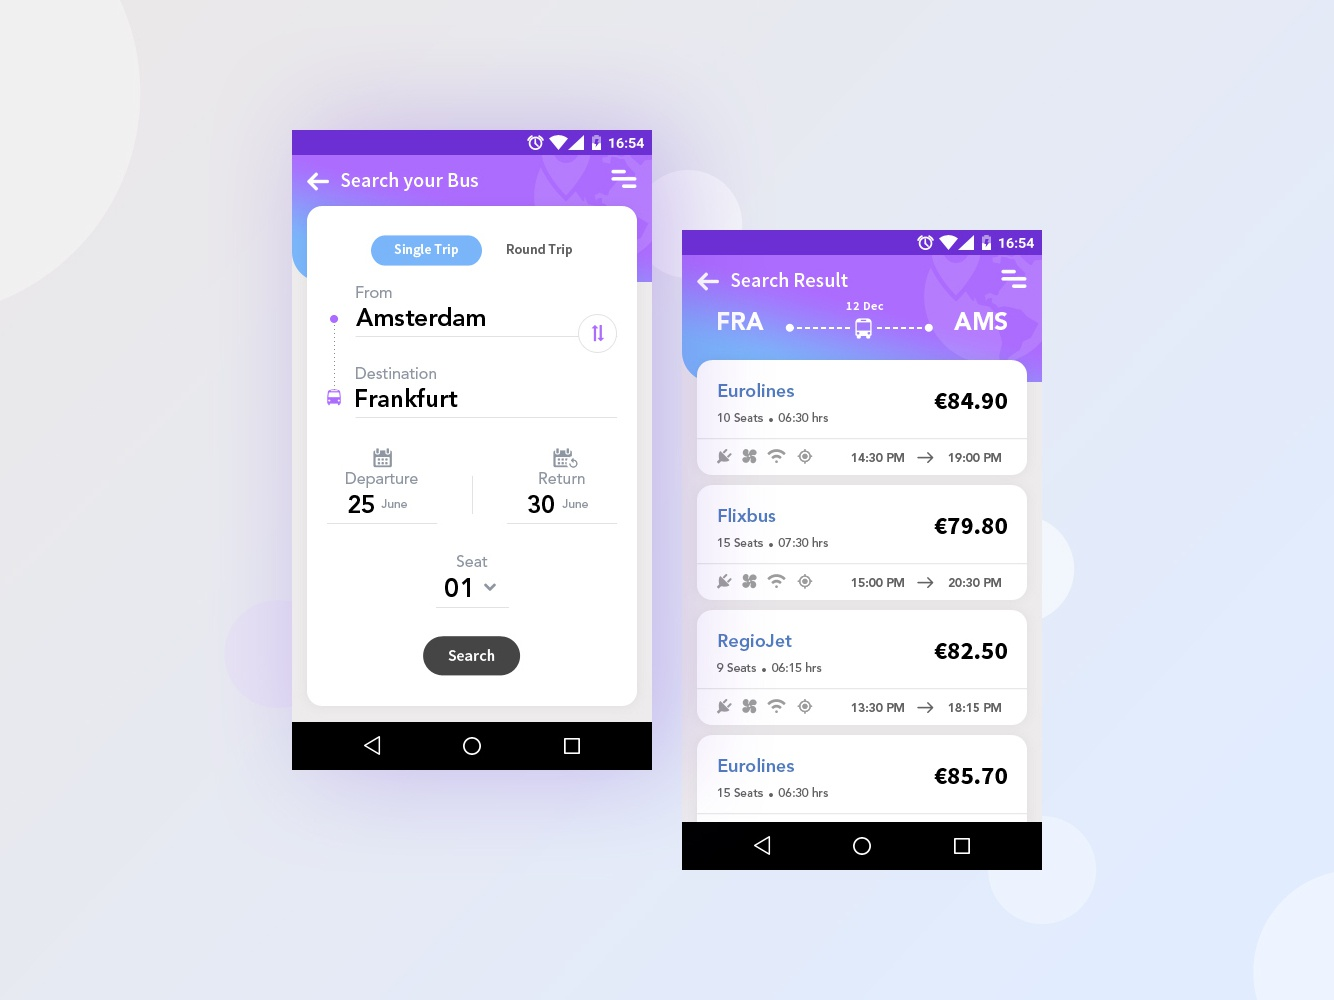 Bus booking android app design android apps android app mobile mobile app visual deisng ux uiux ui ticketapp ticket booking ticket app ticket bus booking bus booking busbooking